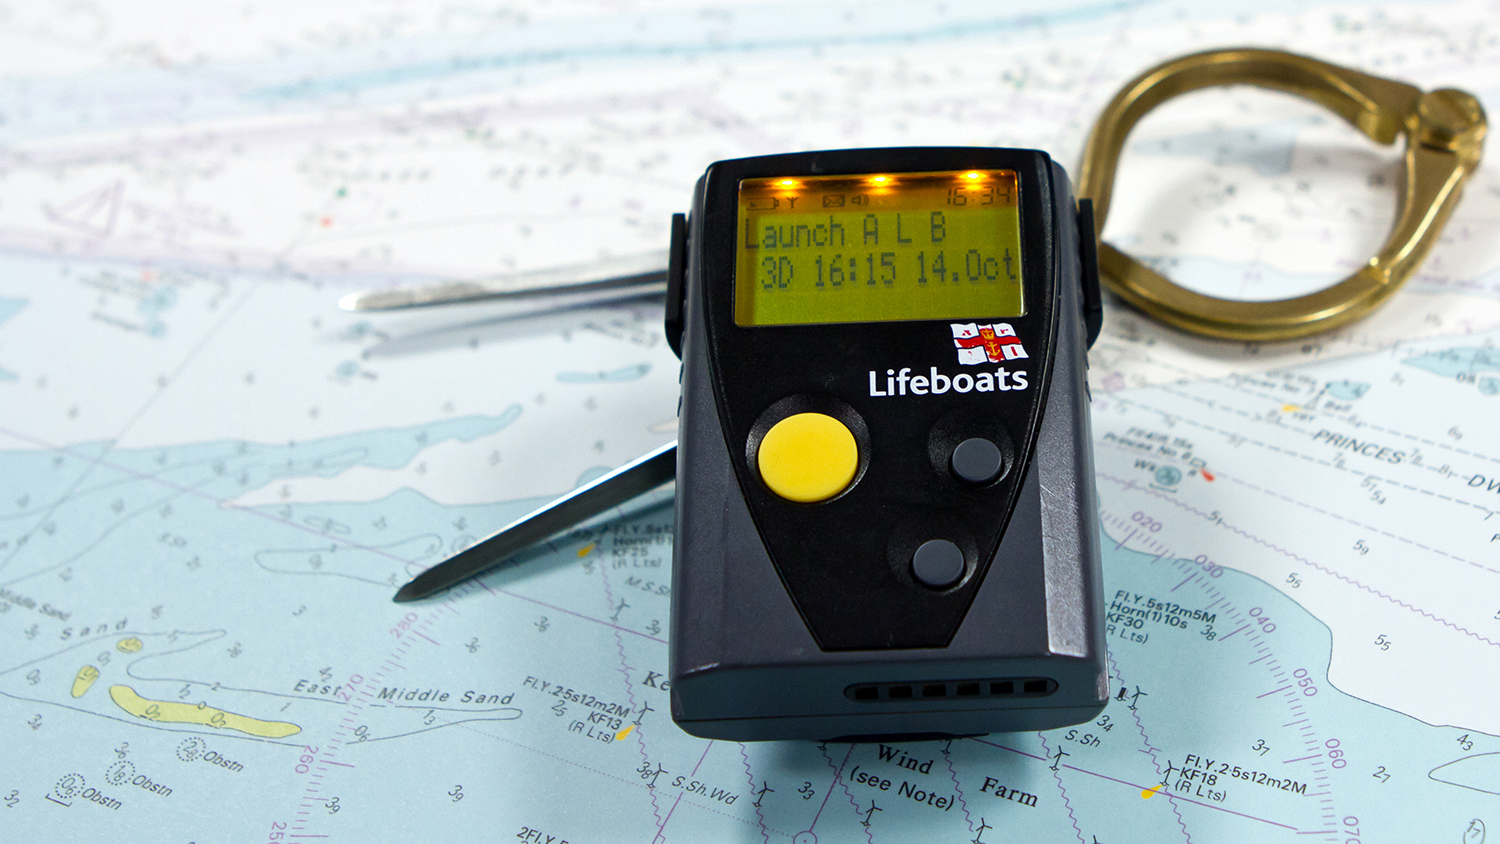 RNLI pager on a chart with a pair of dividers